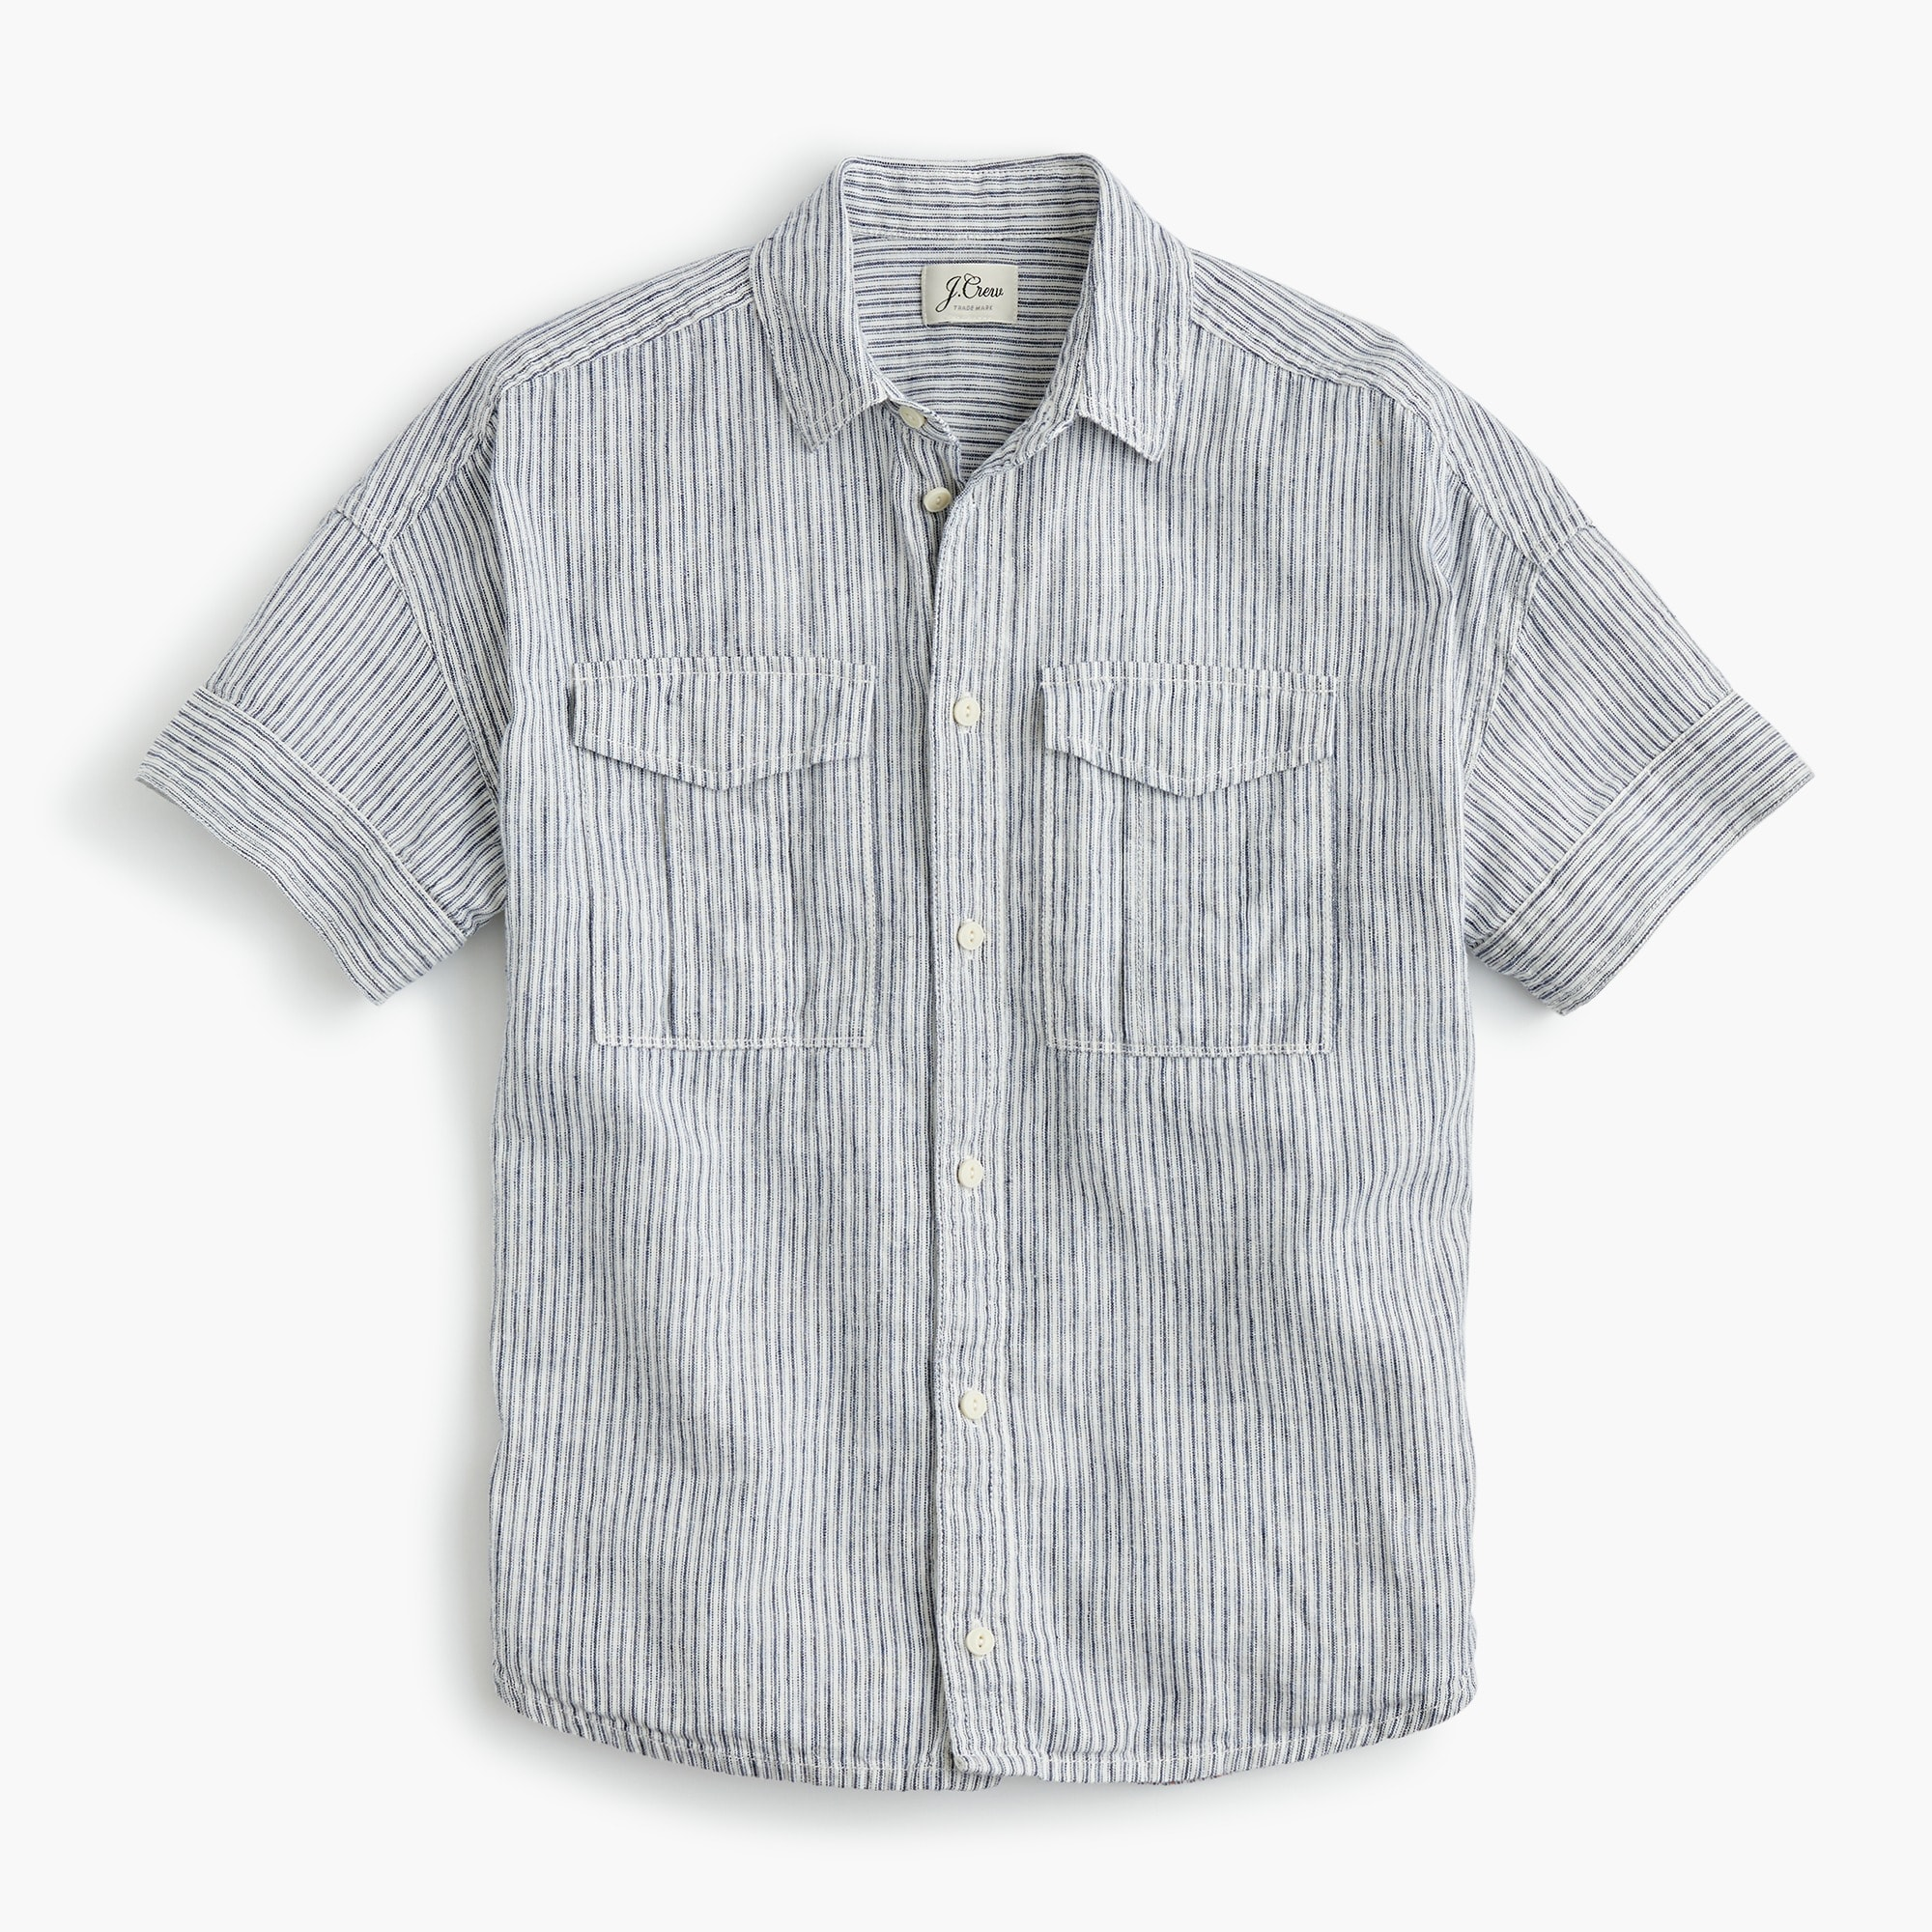 Utility pocket shirt in chambray stripe